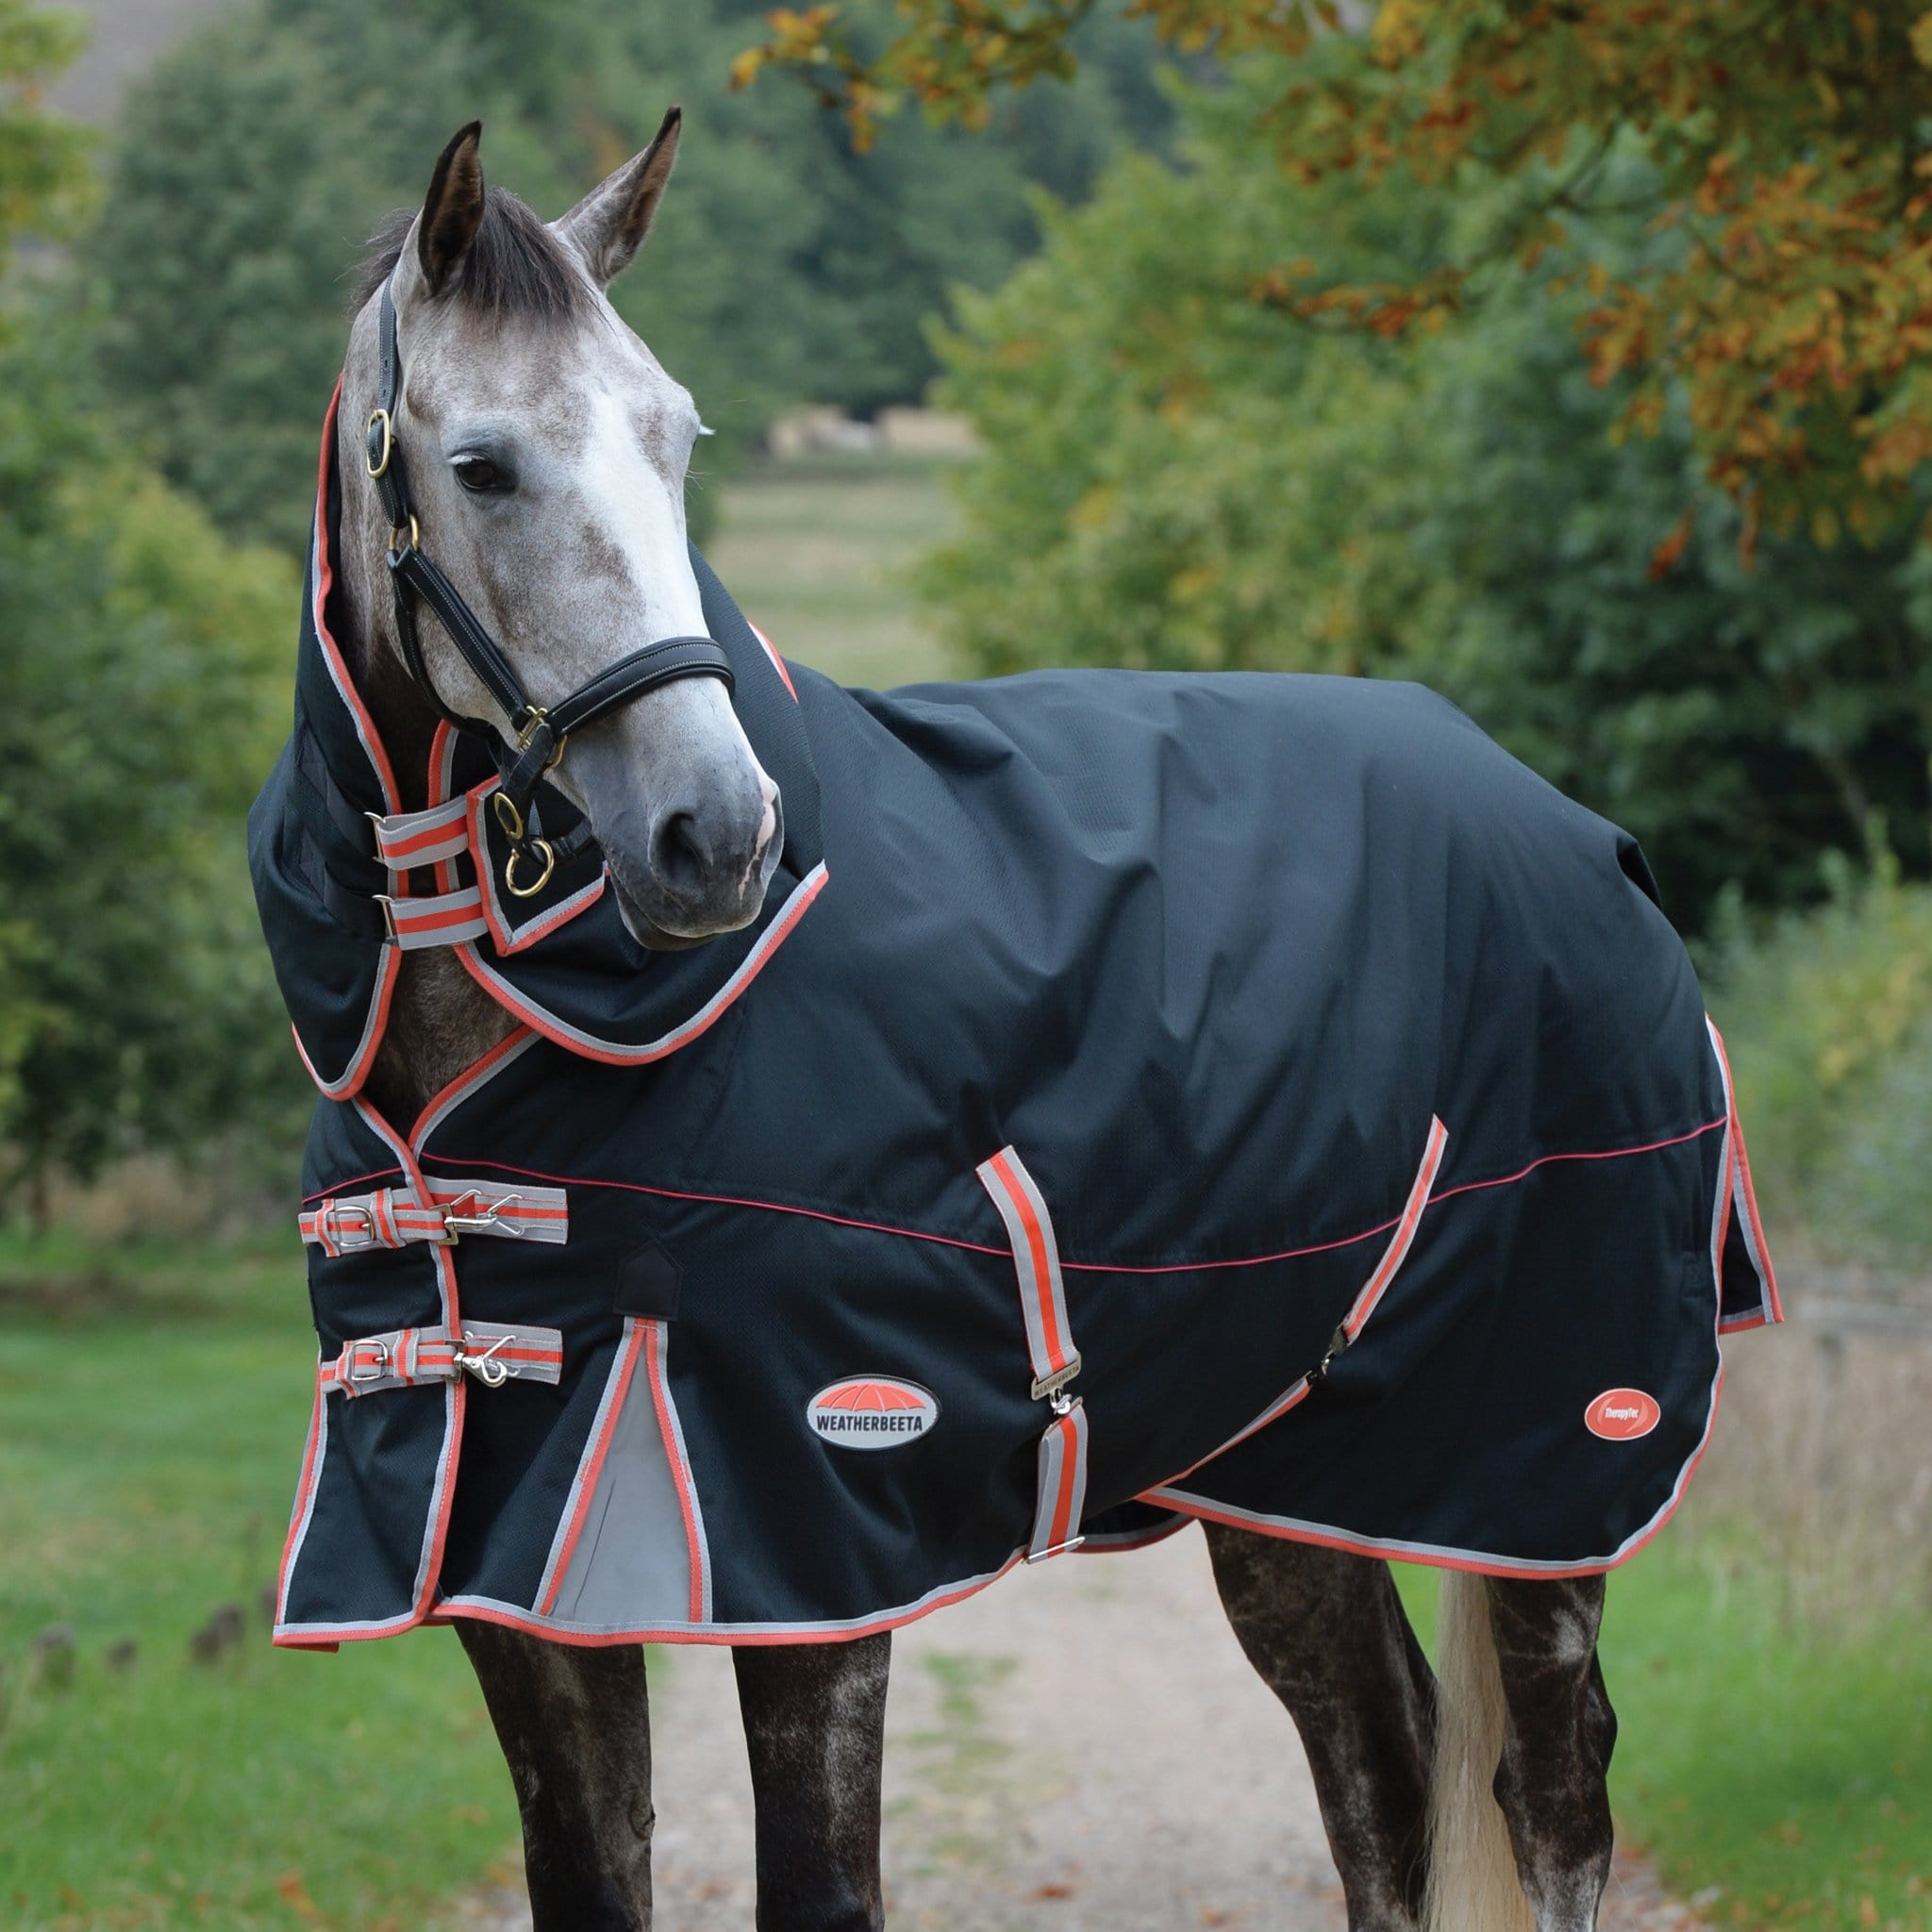 WeatherBeeta ComFiTec Premier Therapy-Tec Mediumweight 220g Detachable Neck Turnout Rug 1001614001 Horse Standing